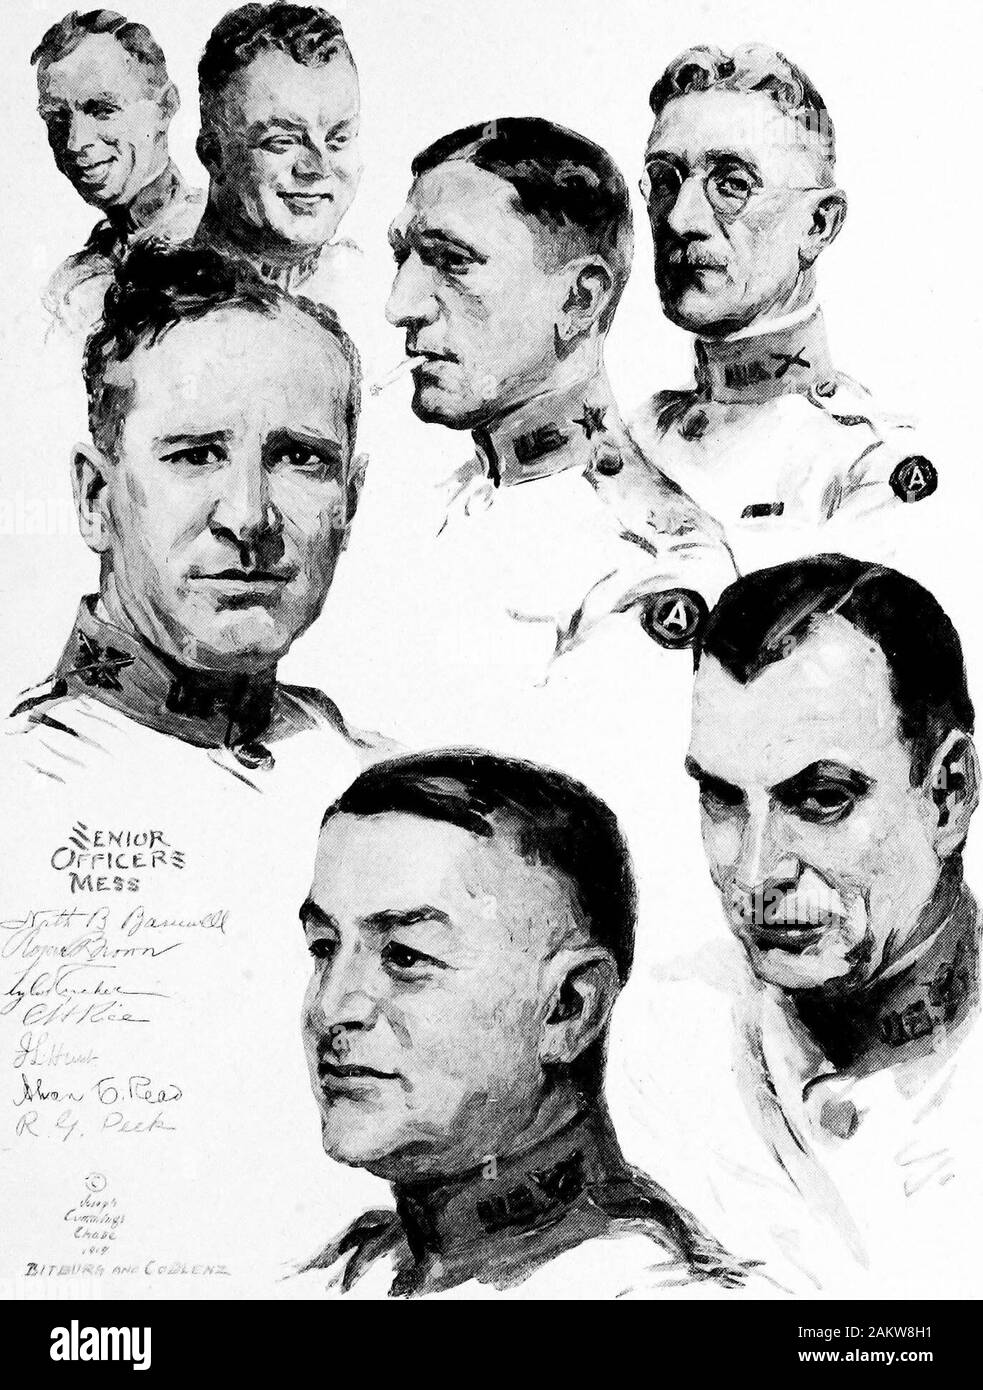 Soldiers all; portraits and sketches of the men of the AEF. . .« y,K *f8V. Stock Photo